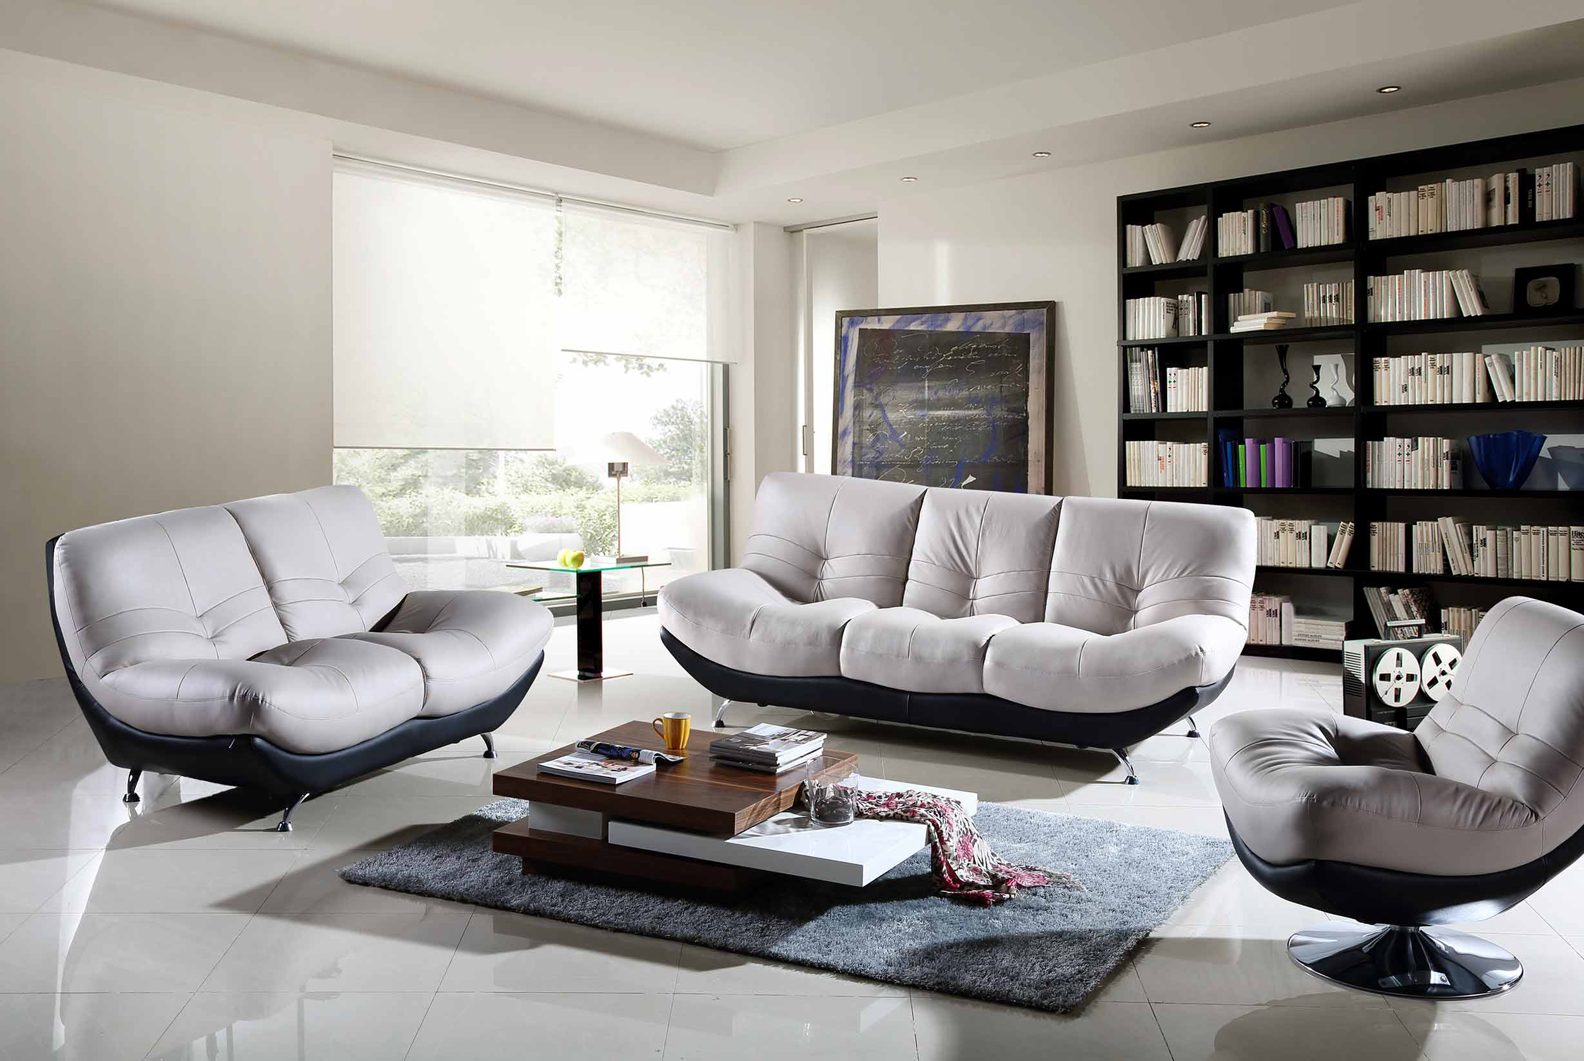 How to decorate your home using modern furniture